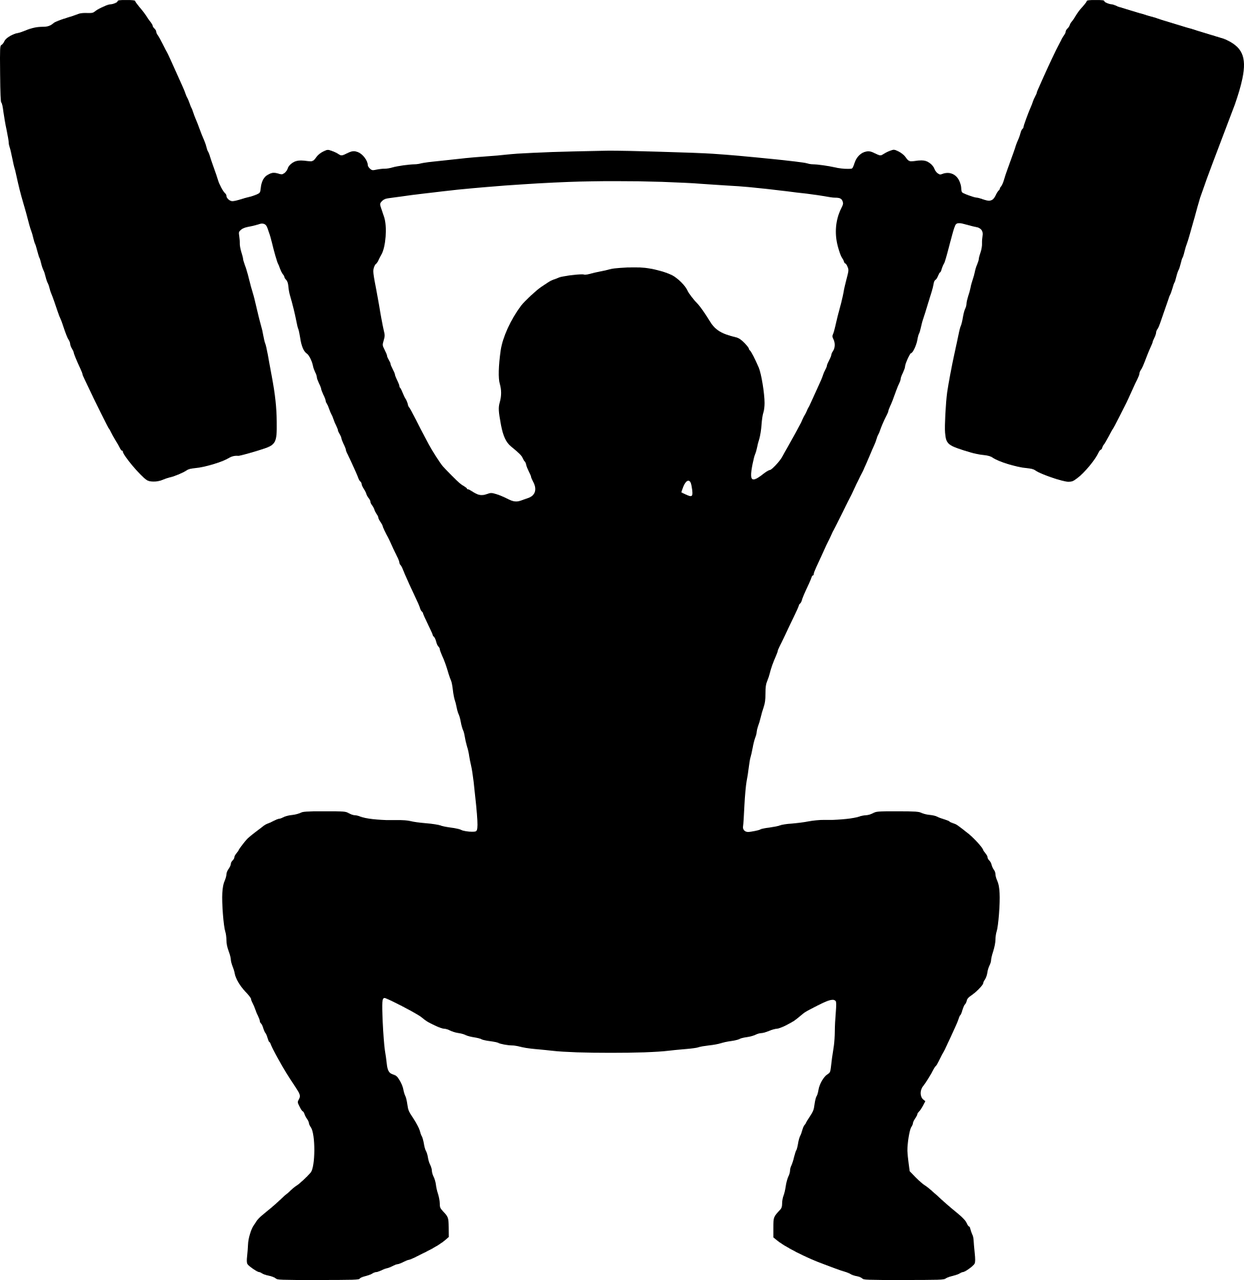 silhouette-3276824_1280.png